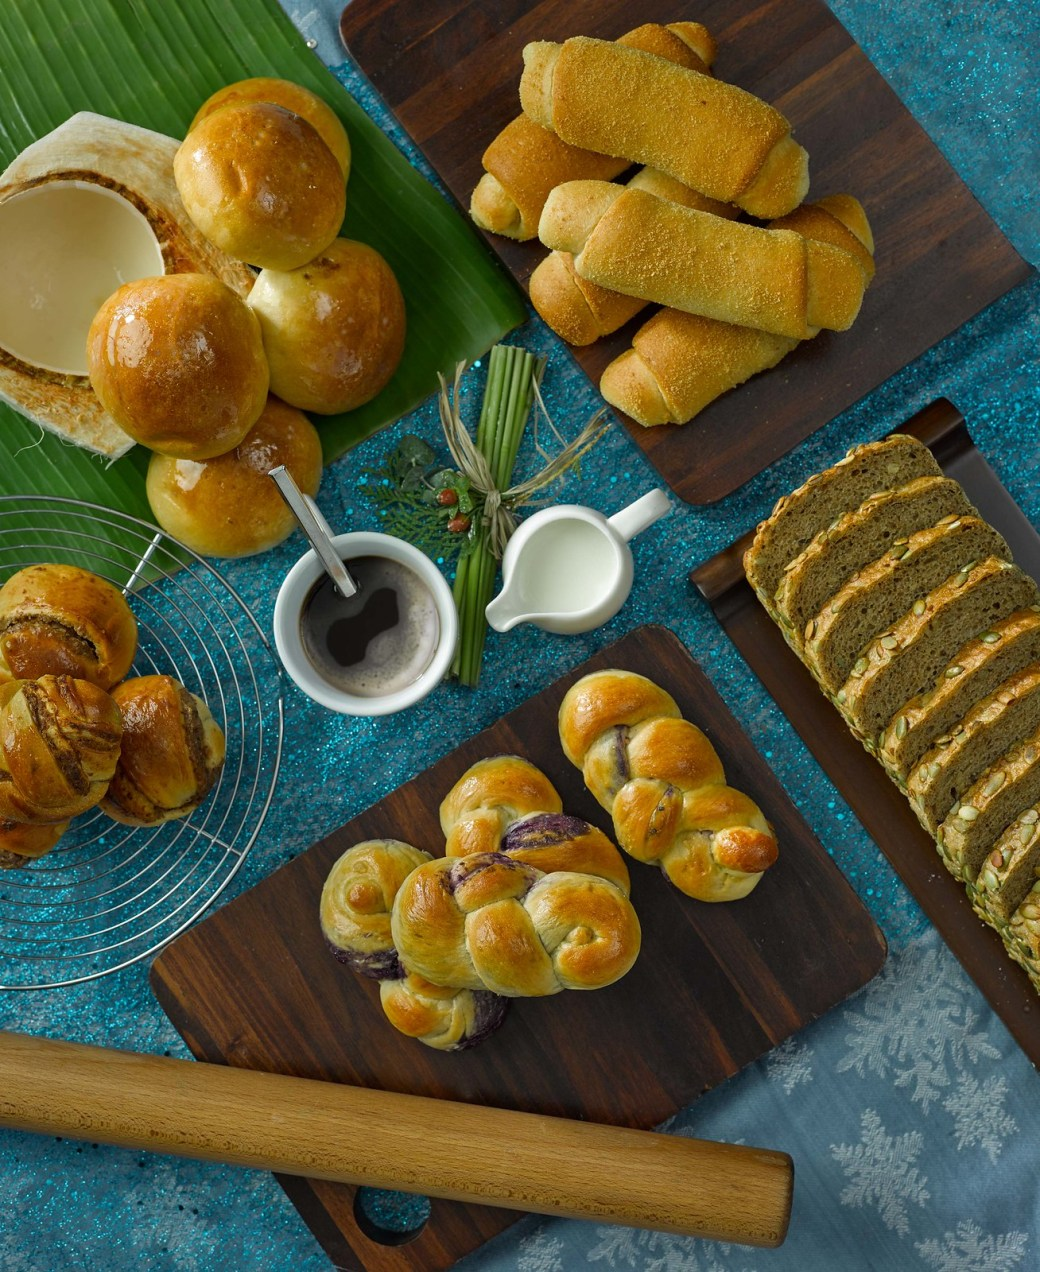 (Clockwise) Spanish Bread, Ube Twist, Mongo Bread, Pan De Coco